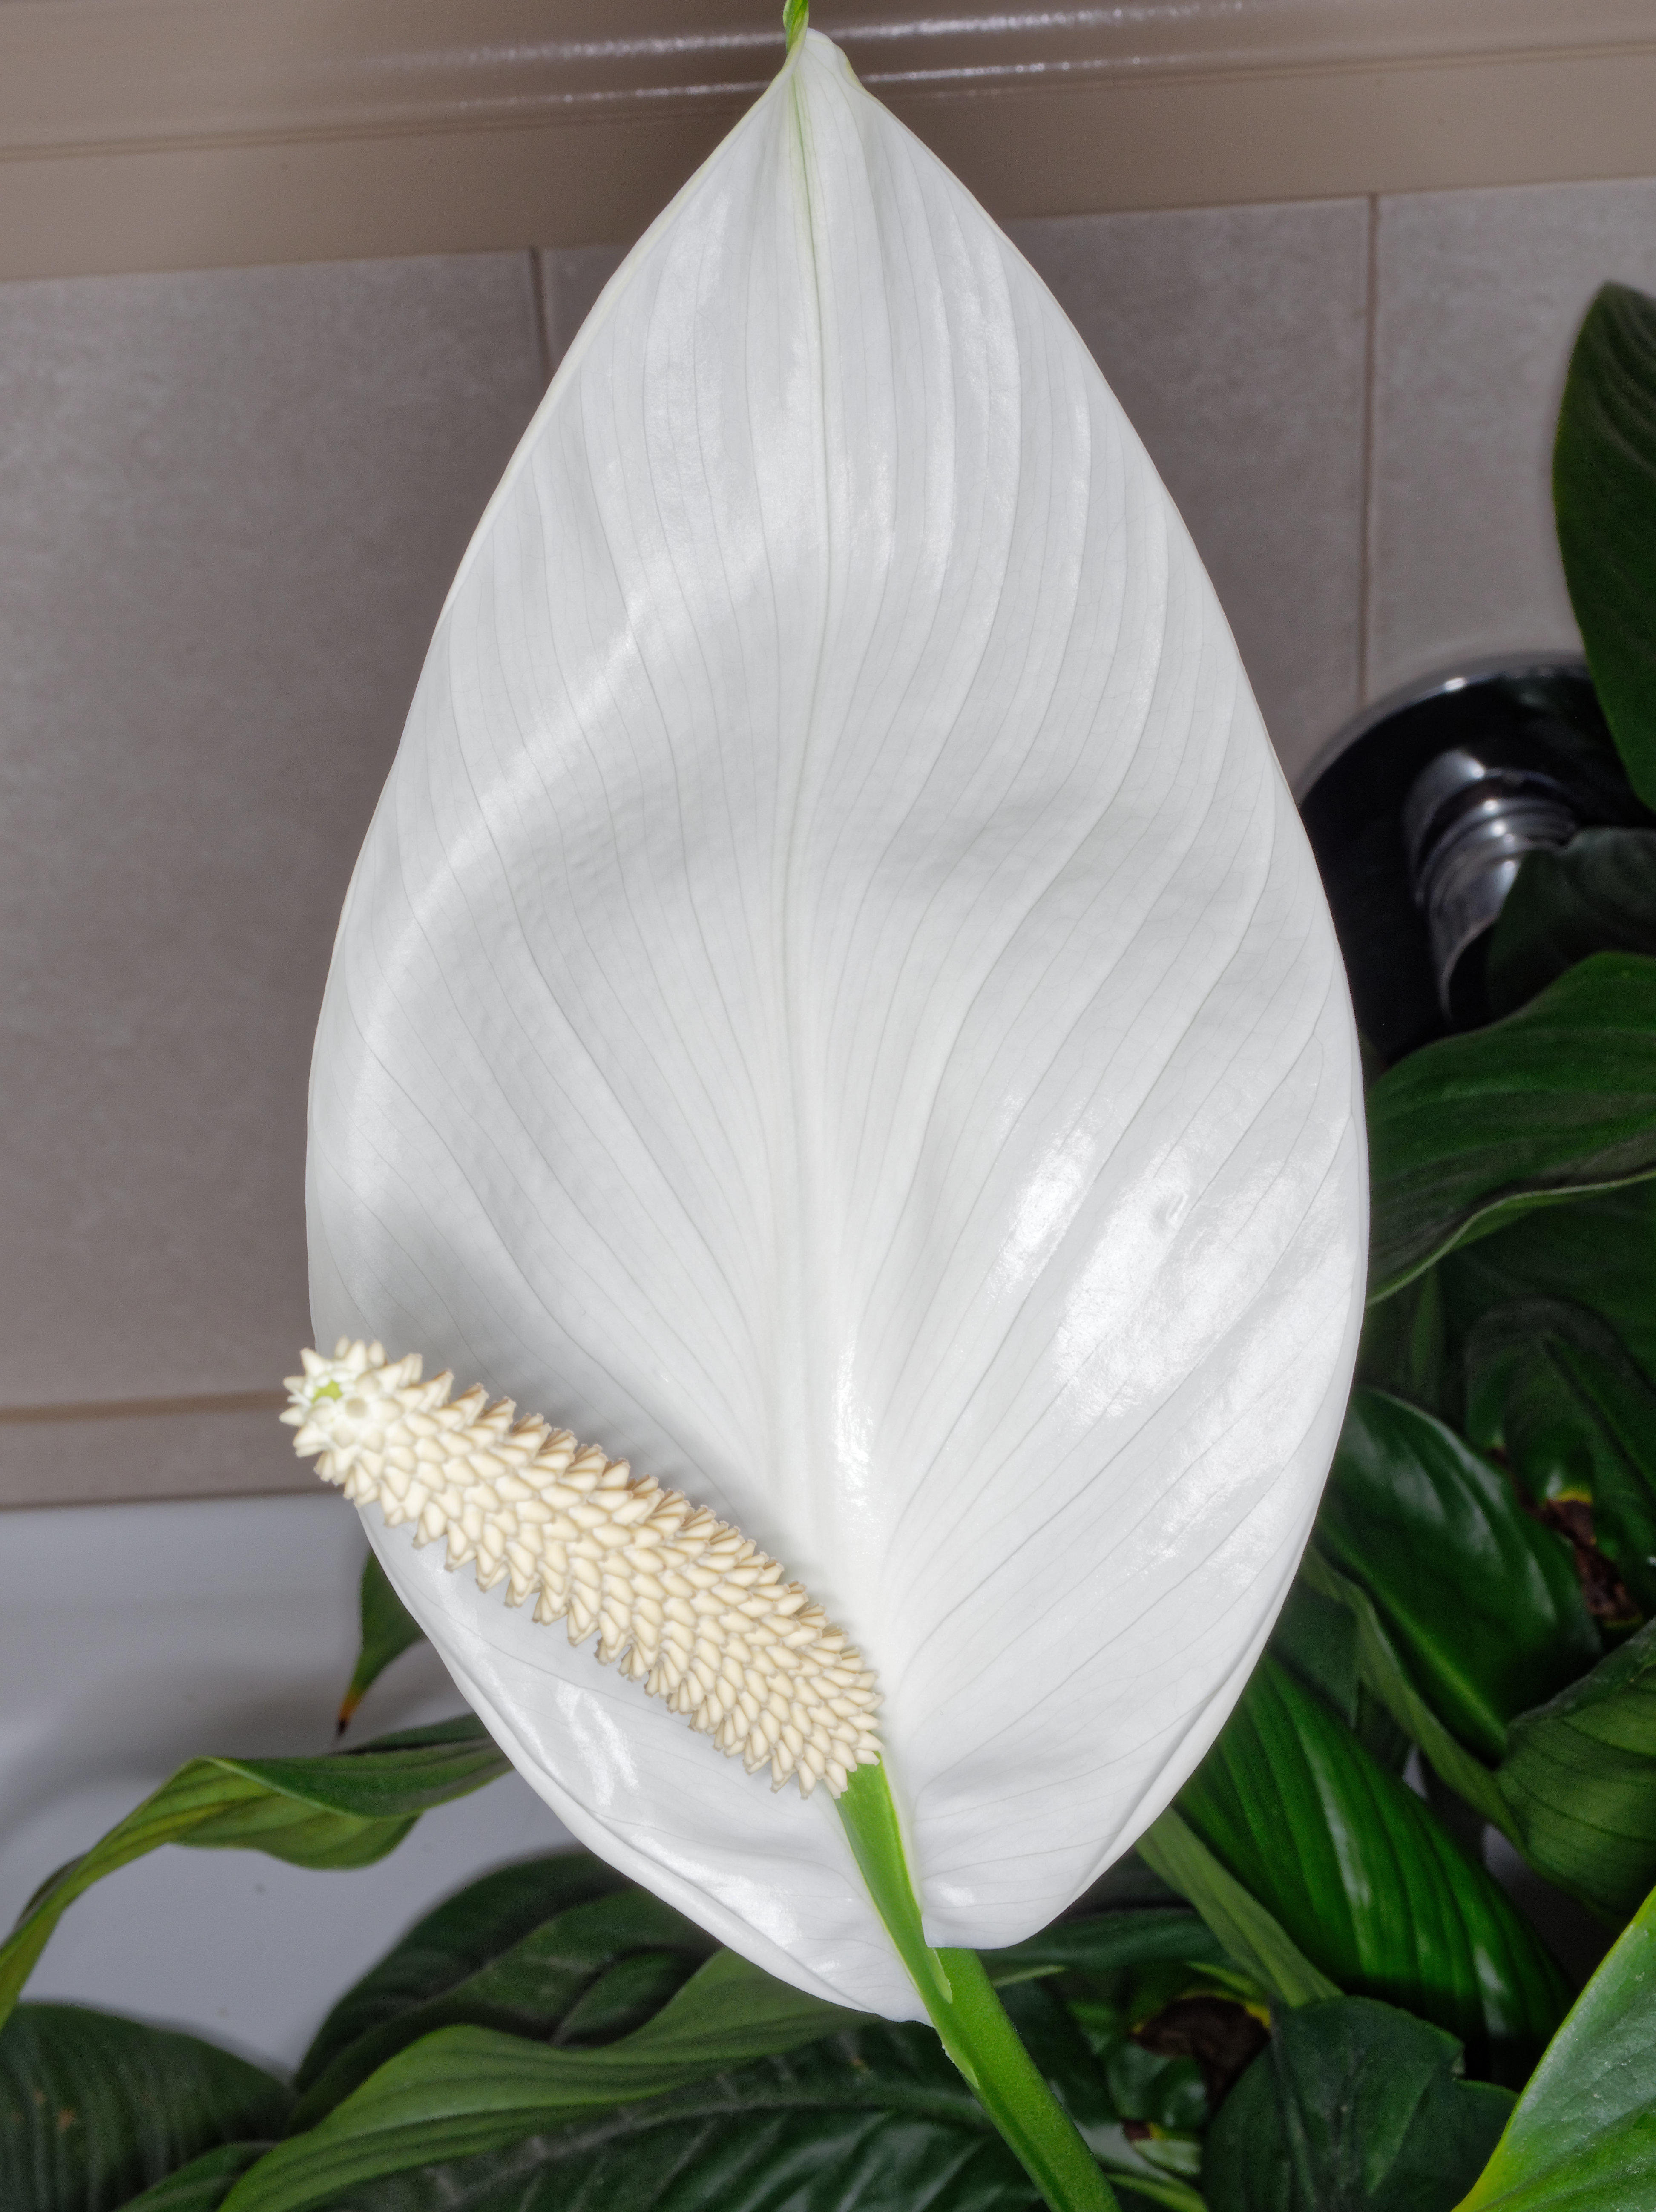 This should be Spathiphyllum-3.jpeg.  Is it missing?